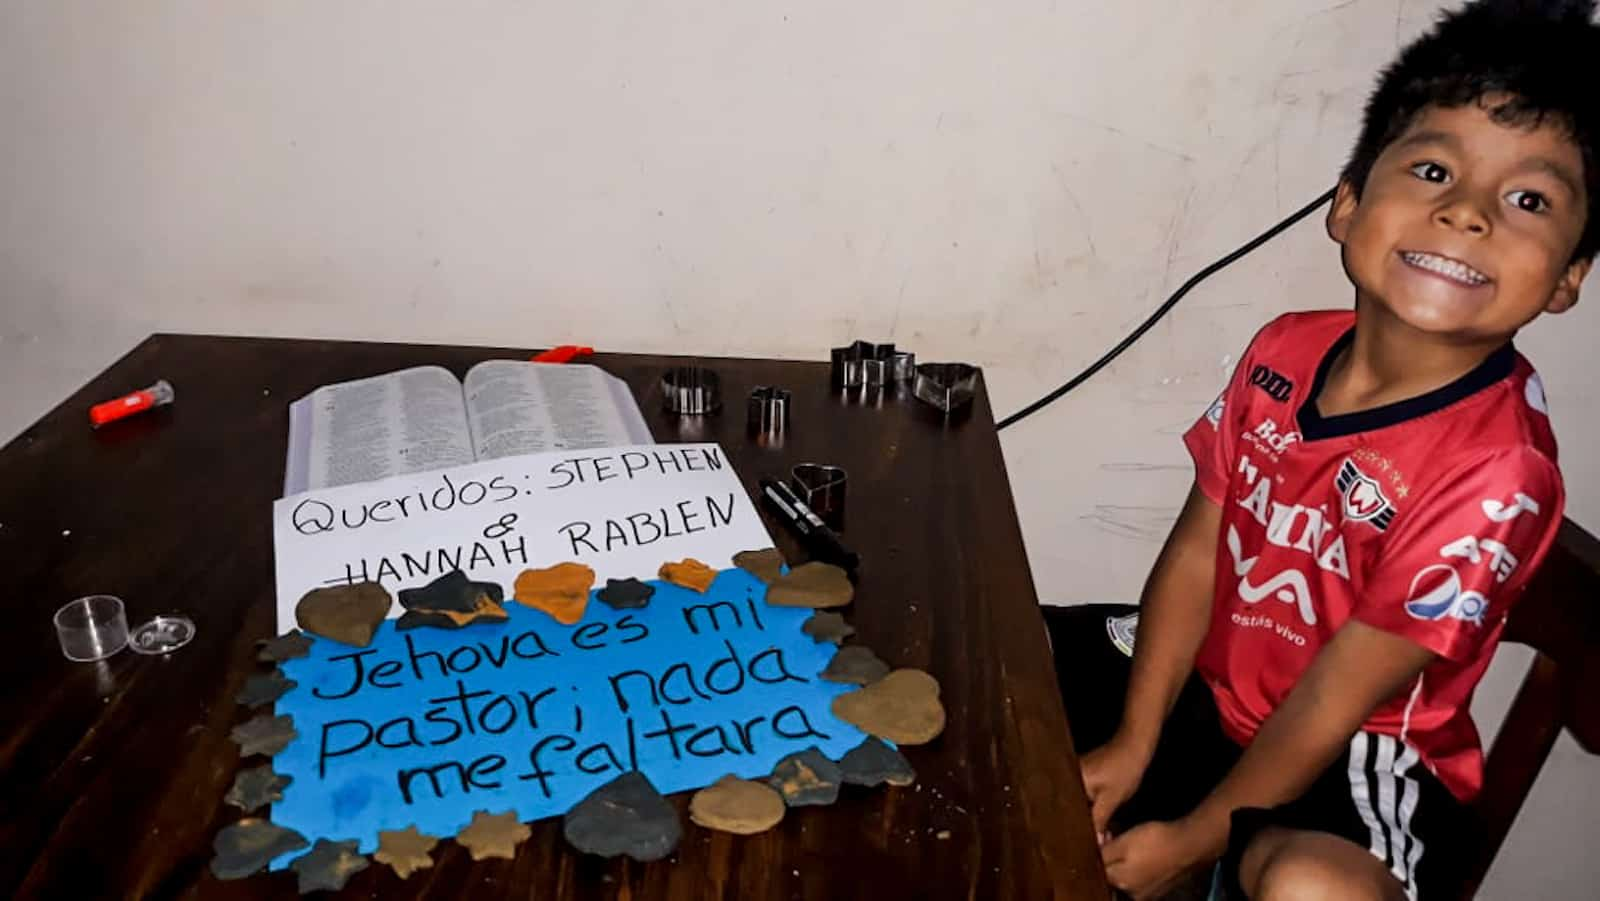 A boy sits by a table with a sign in Spanish